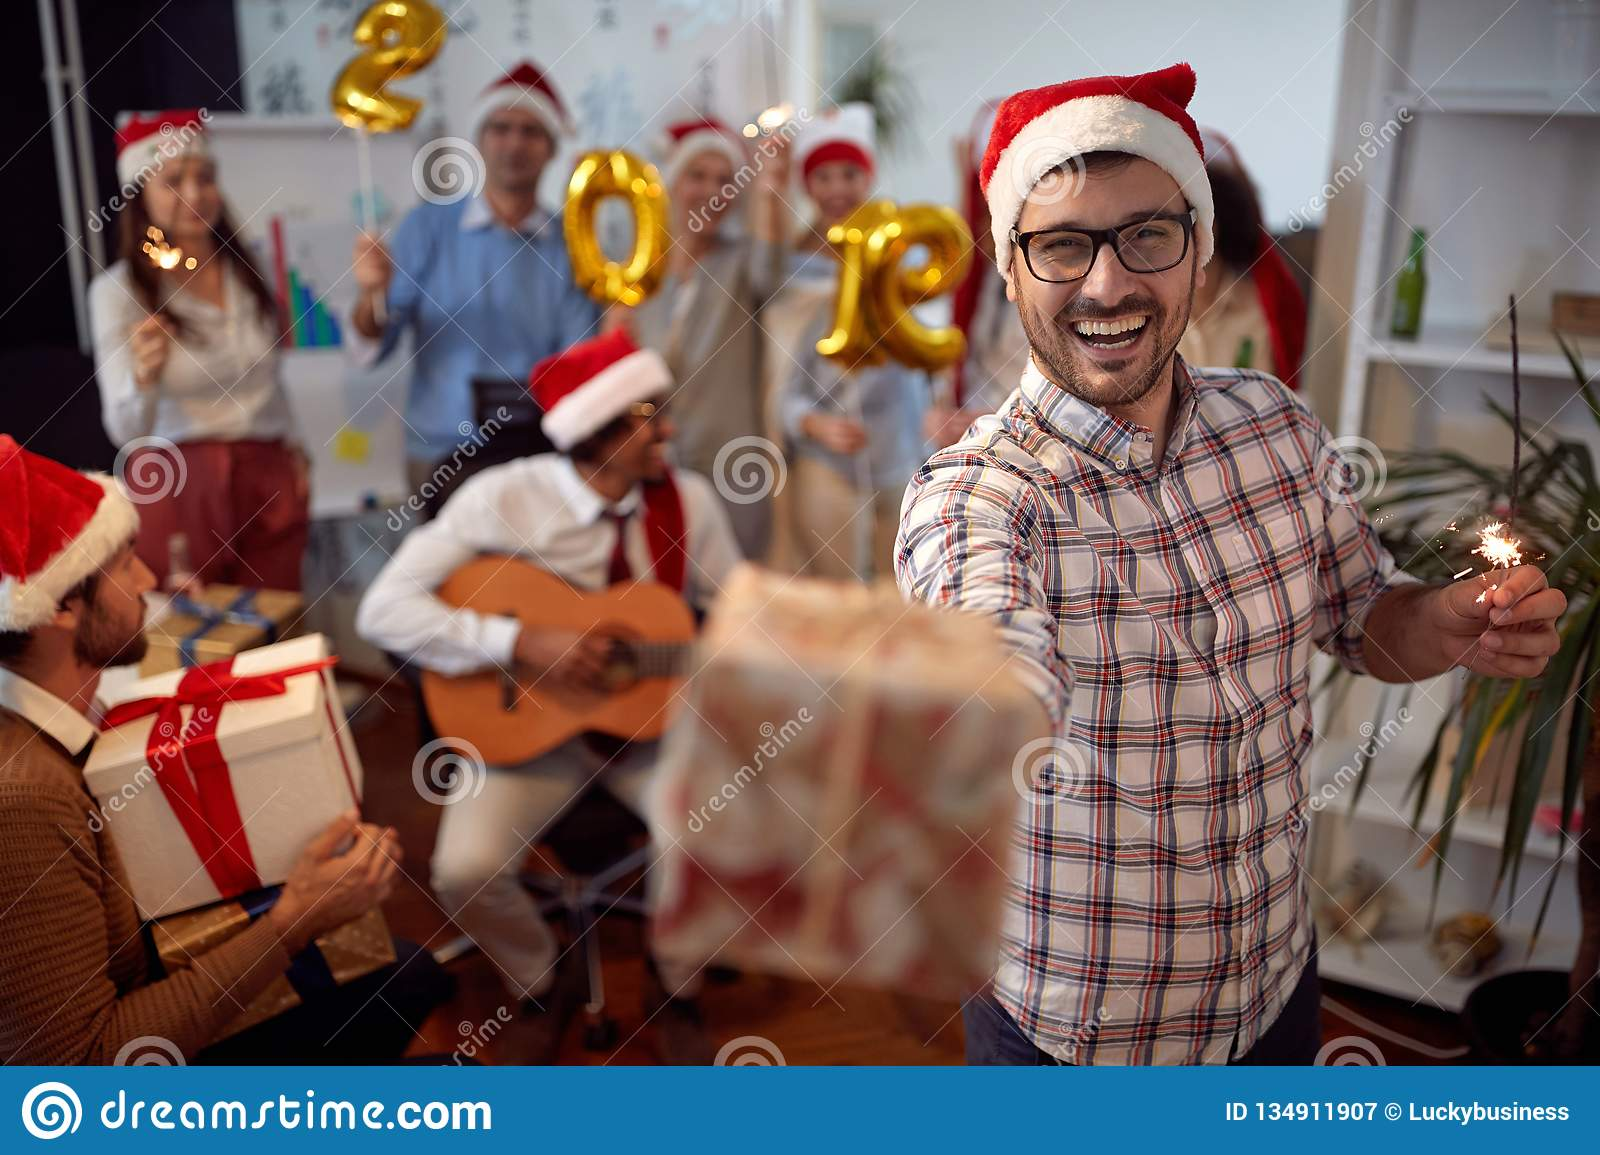 Happy business man have fun in Santa hat and exchange gifts at Xmas party with his colleagues